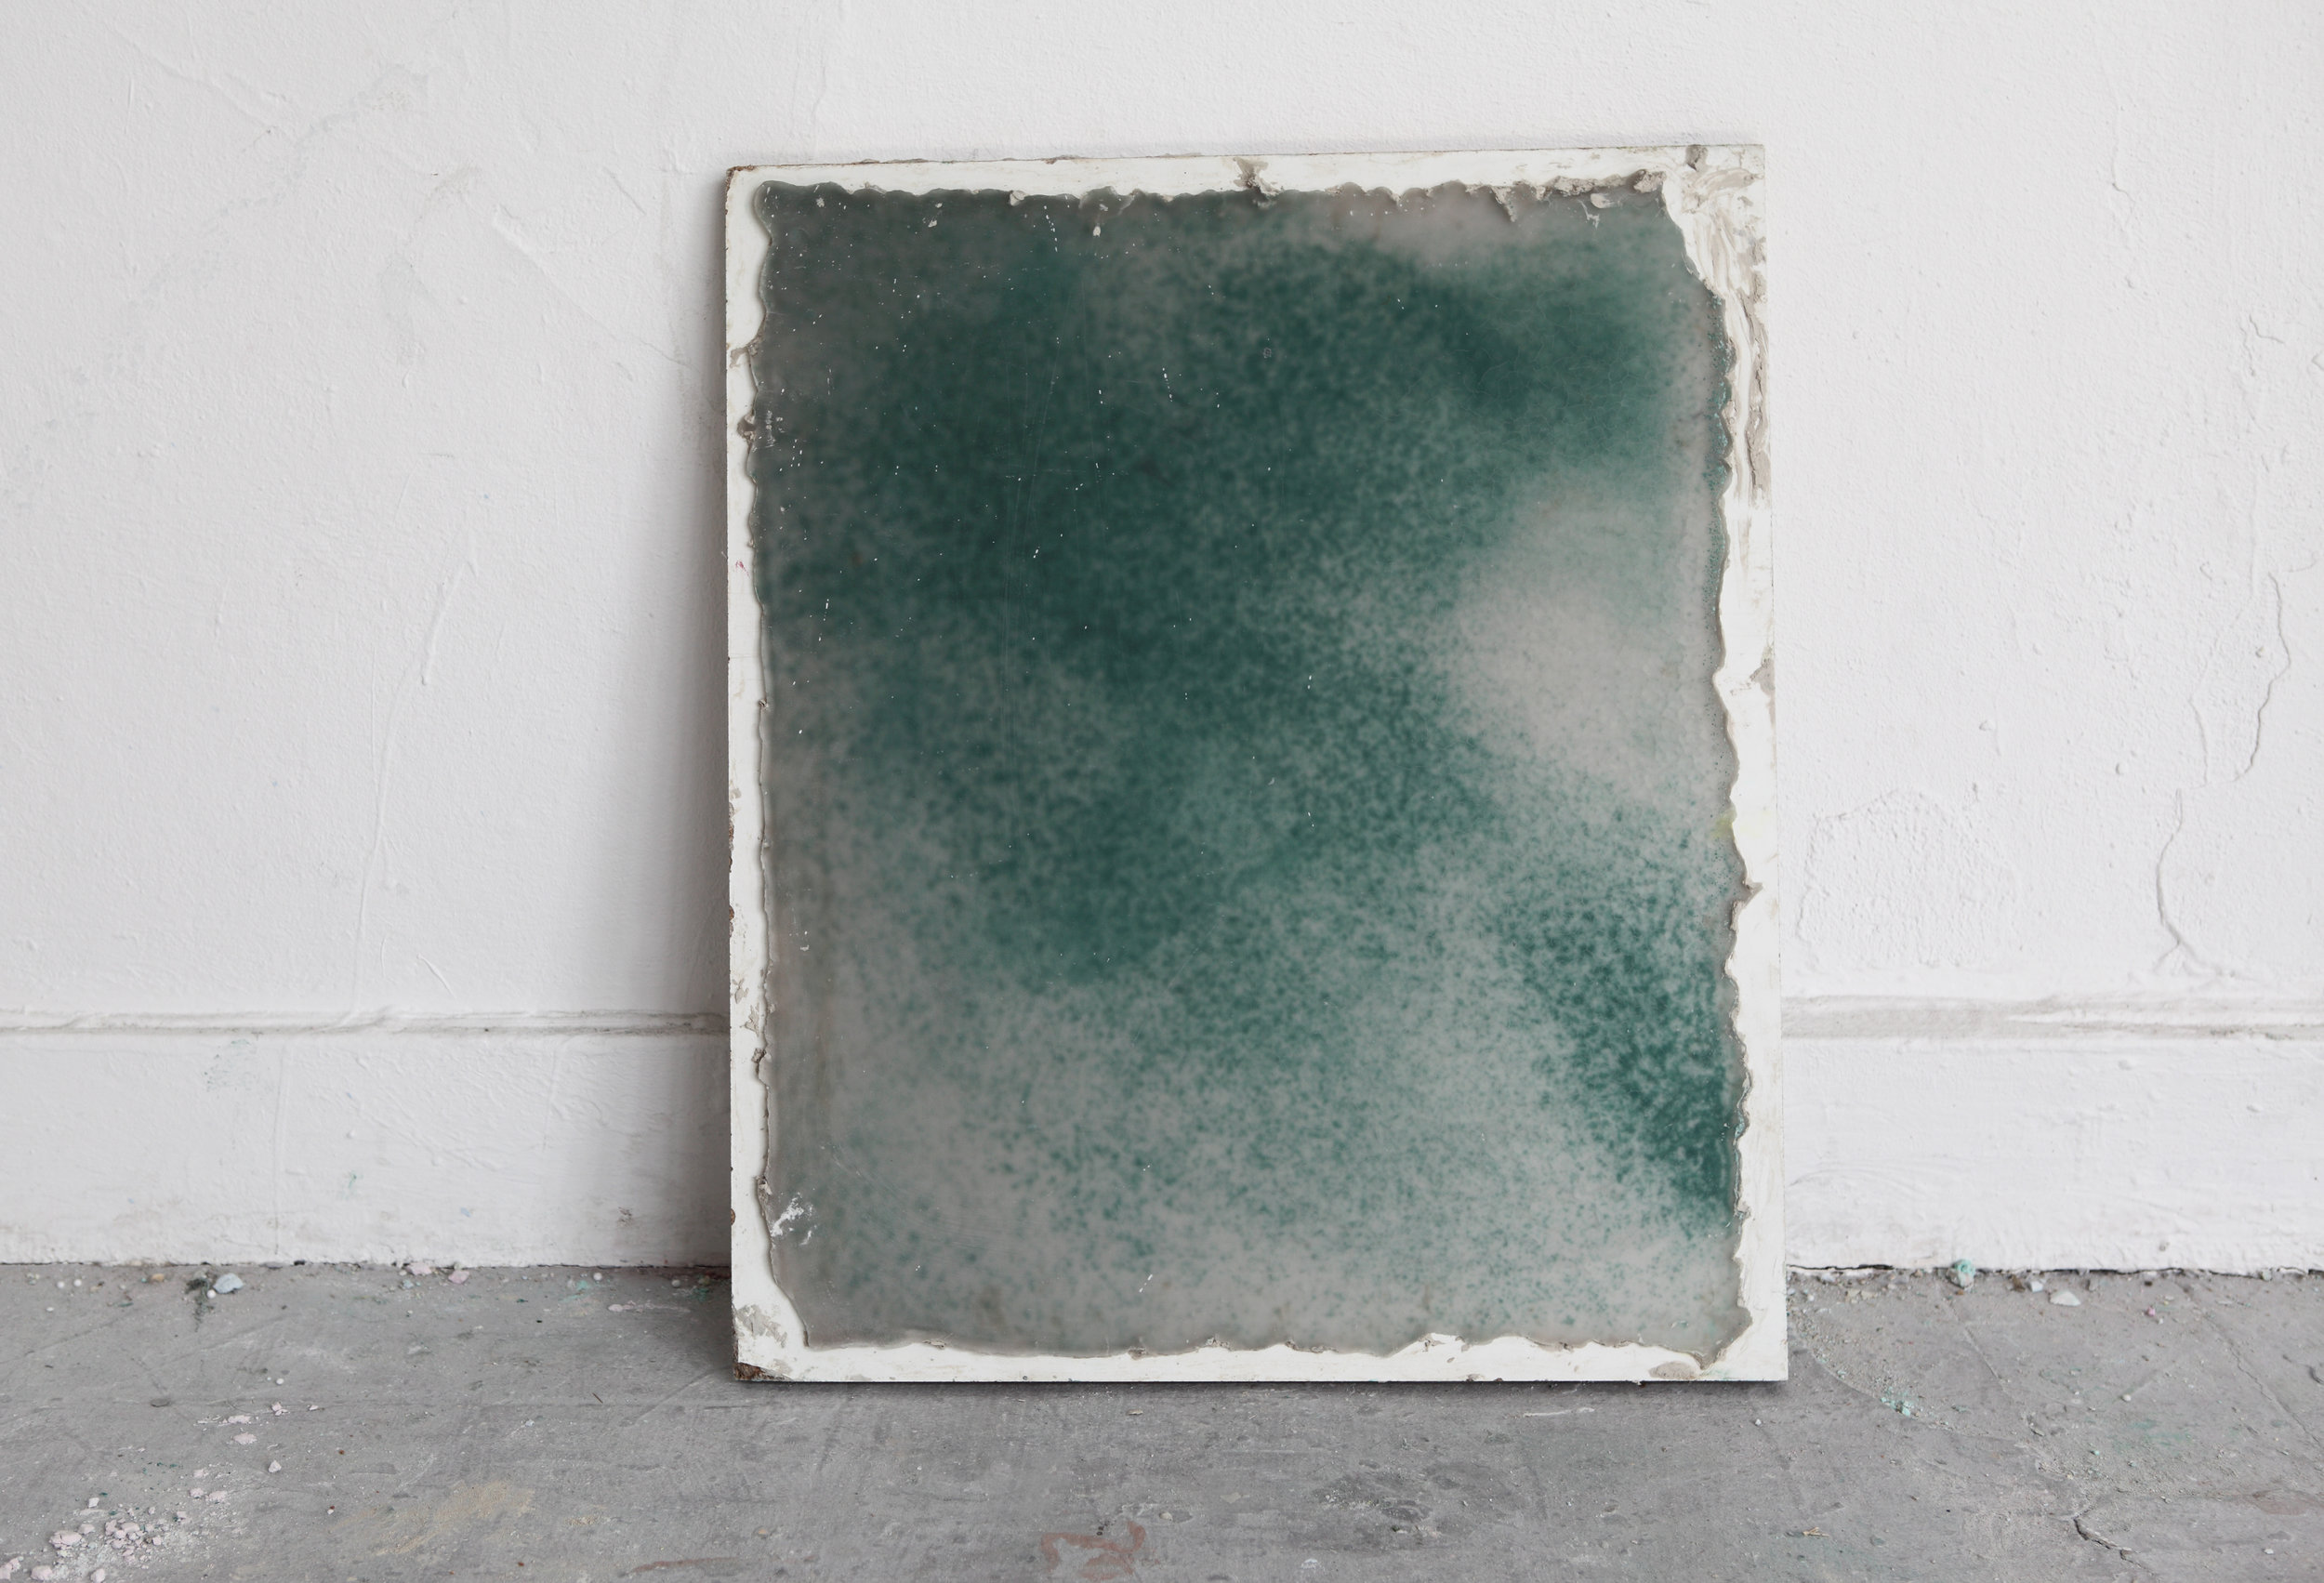 Studio View 2014: Wax plate - Wax, wood, pigments, 35 x 30 cm, Maastricht, 2014